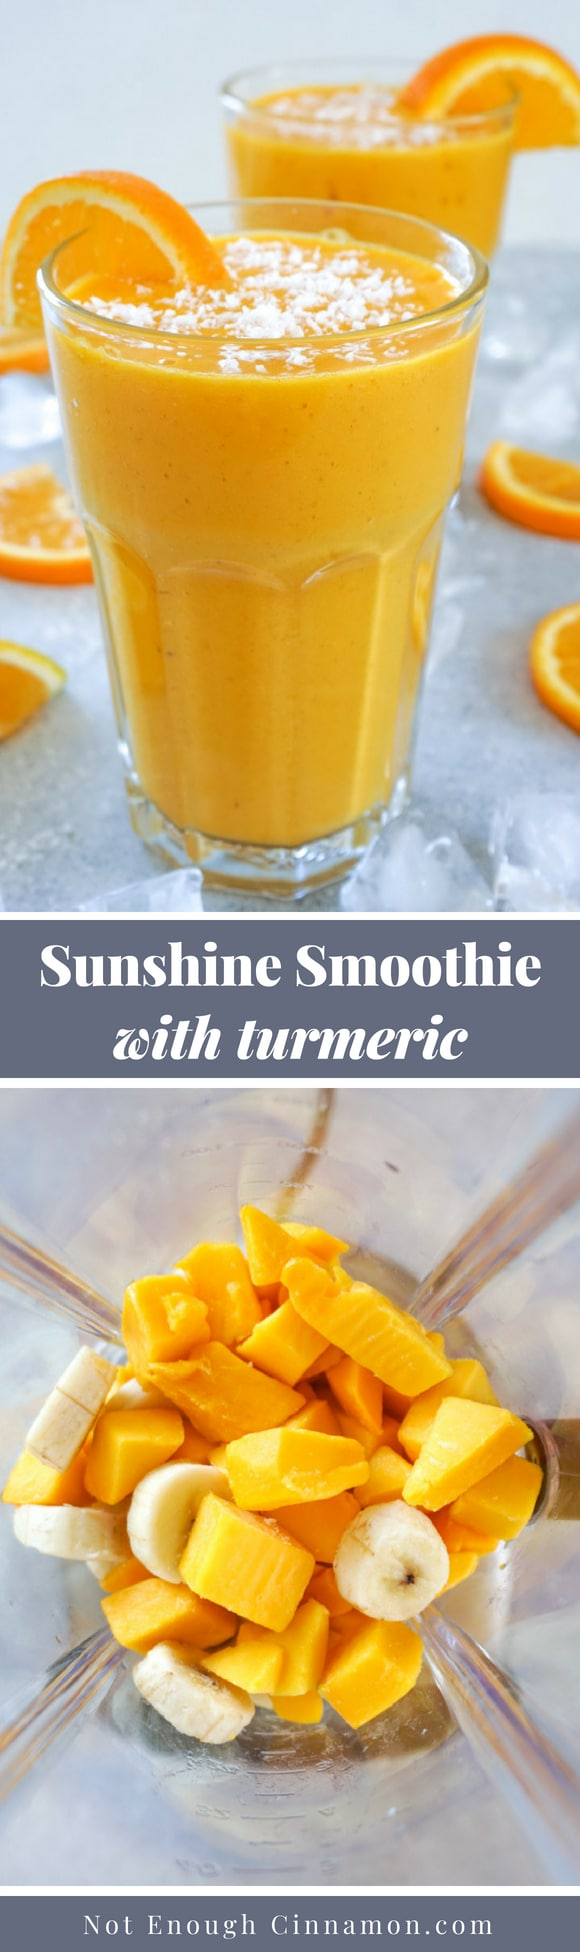 This amazing sunshine smoothie is not only delicious thanks to the mango, banana and orange combo; it's also a nutrition powerhouse. It's high in protein, it covers all of your daily Vitamin C needs and it's anti-inflammatory + antioxidant thanks to the turmeric! Recipe on NotEnoughCinnamon.com #breakfastrecipe #smoothierecipe #healthybreakfast